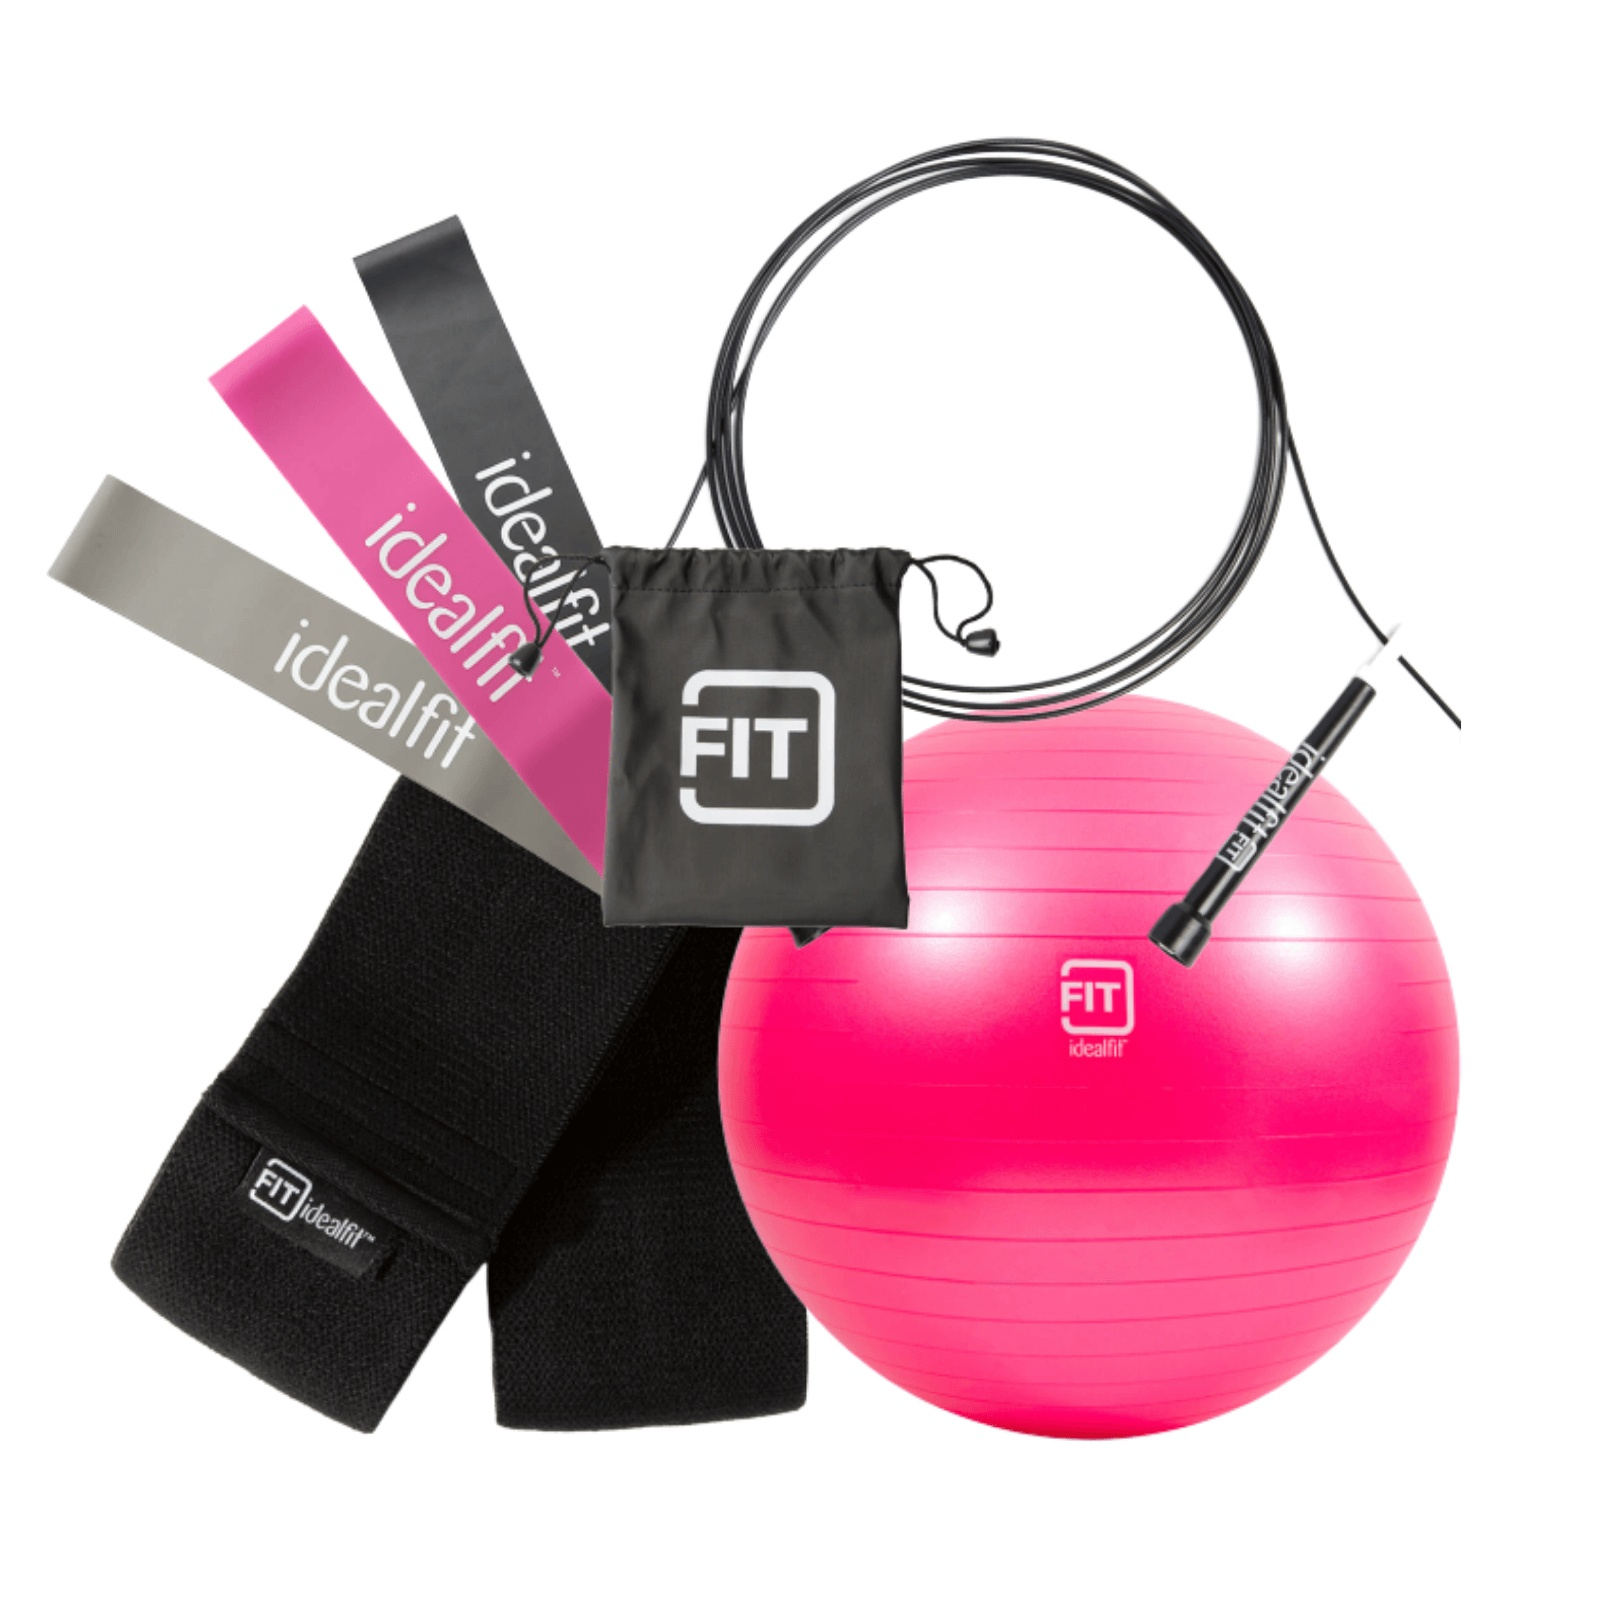 IDEALFIT At-home workout gear and accessories